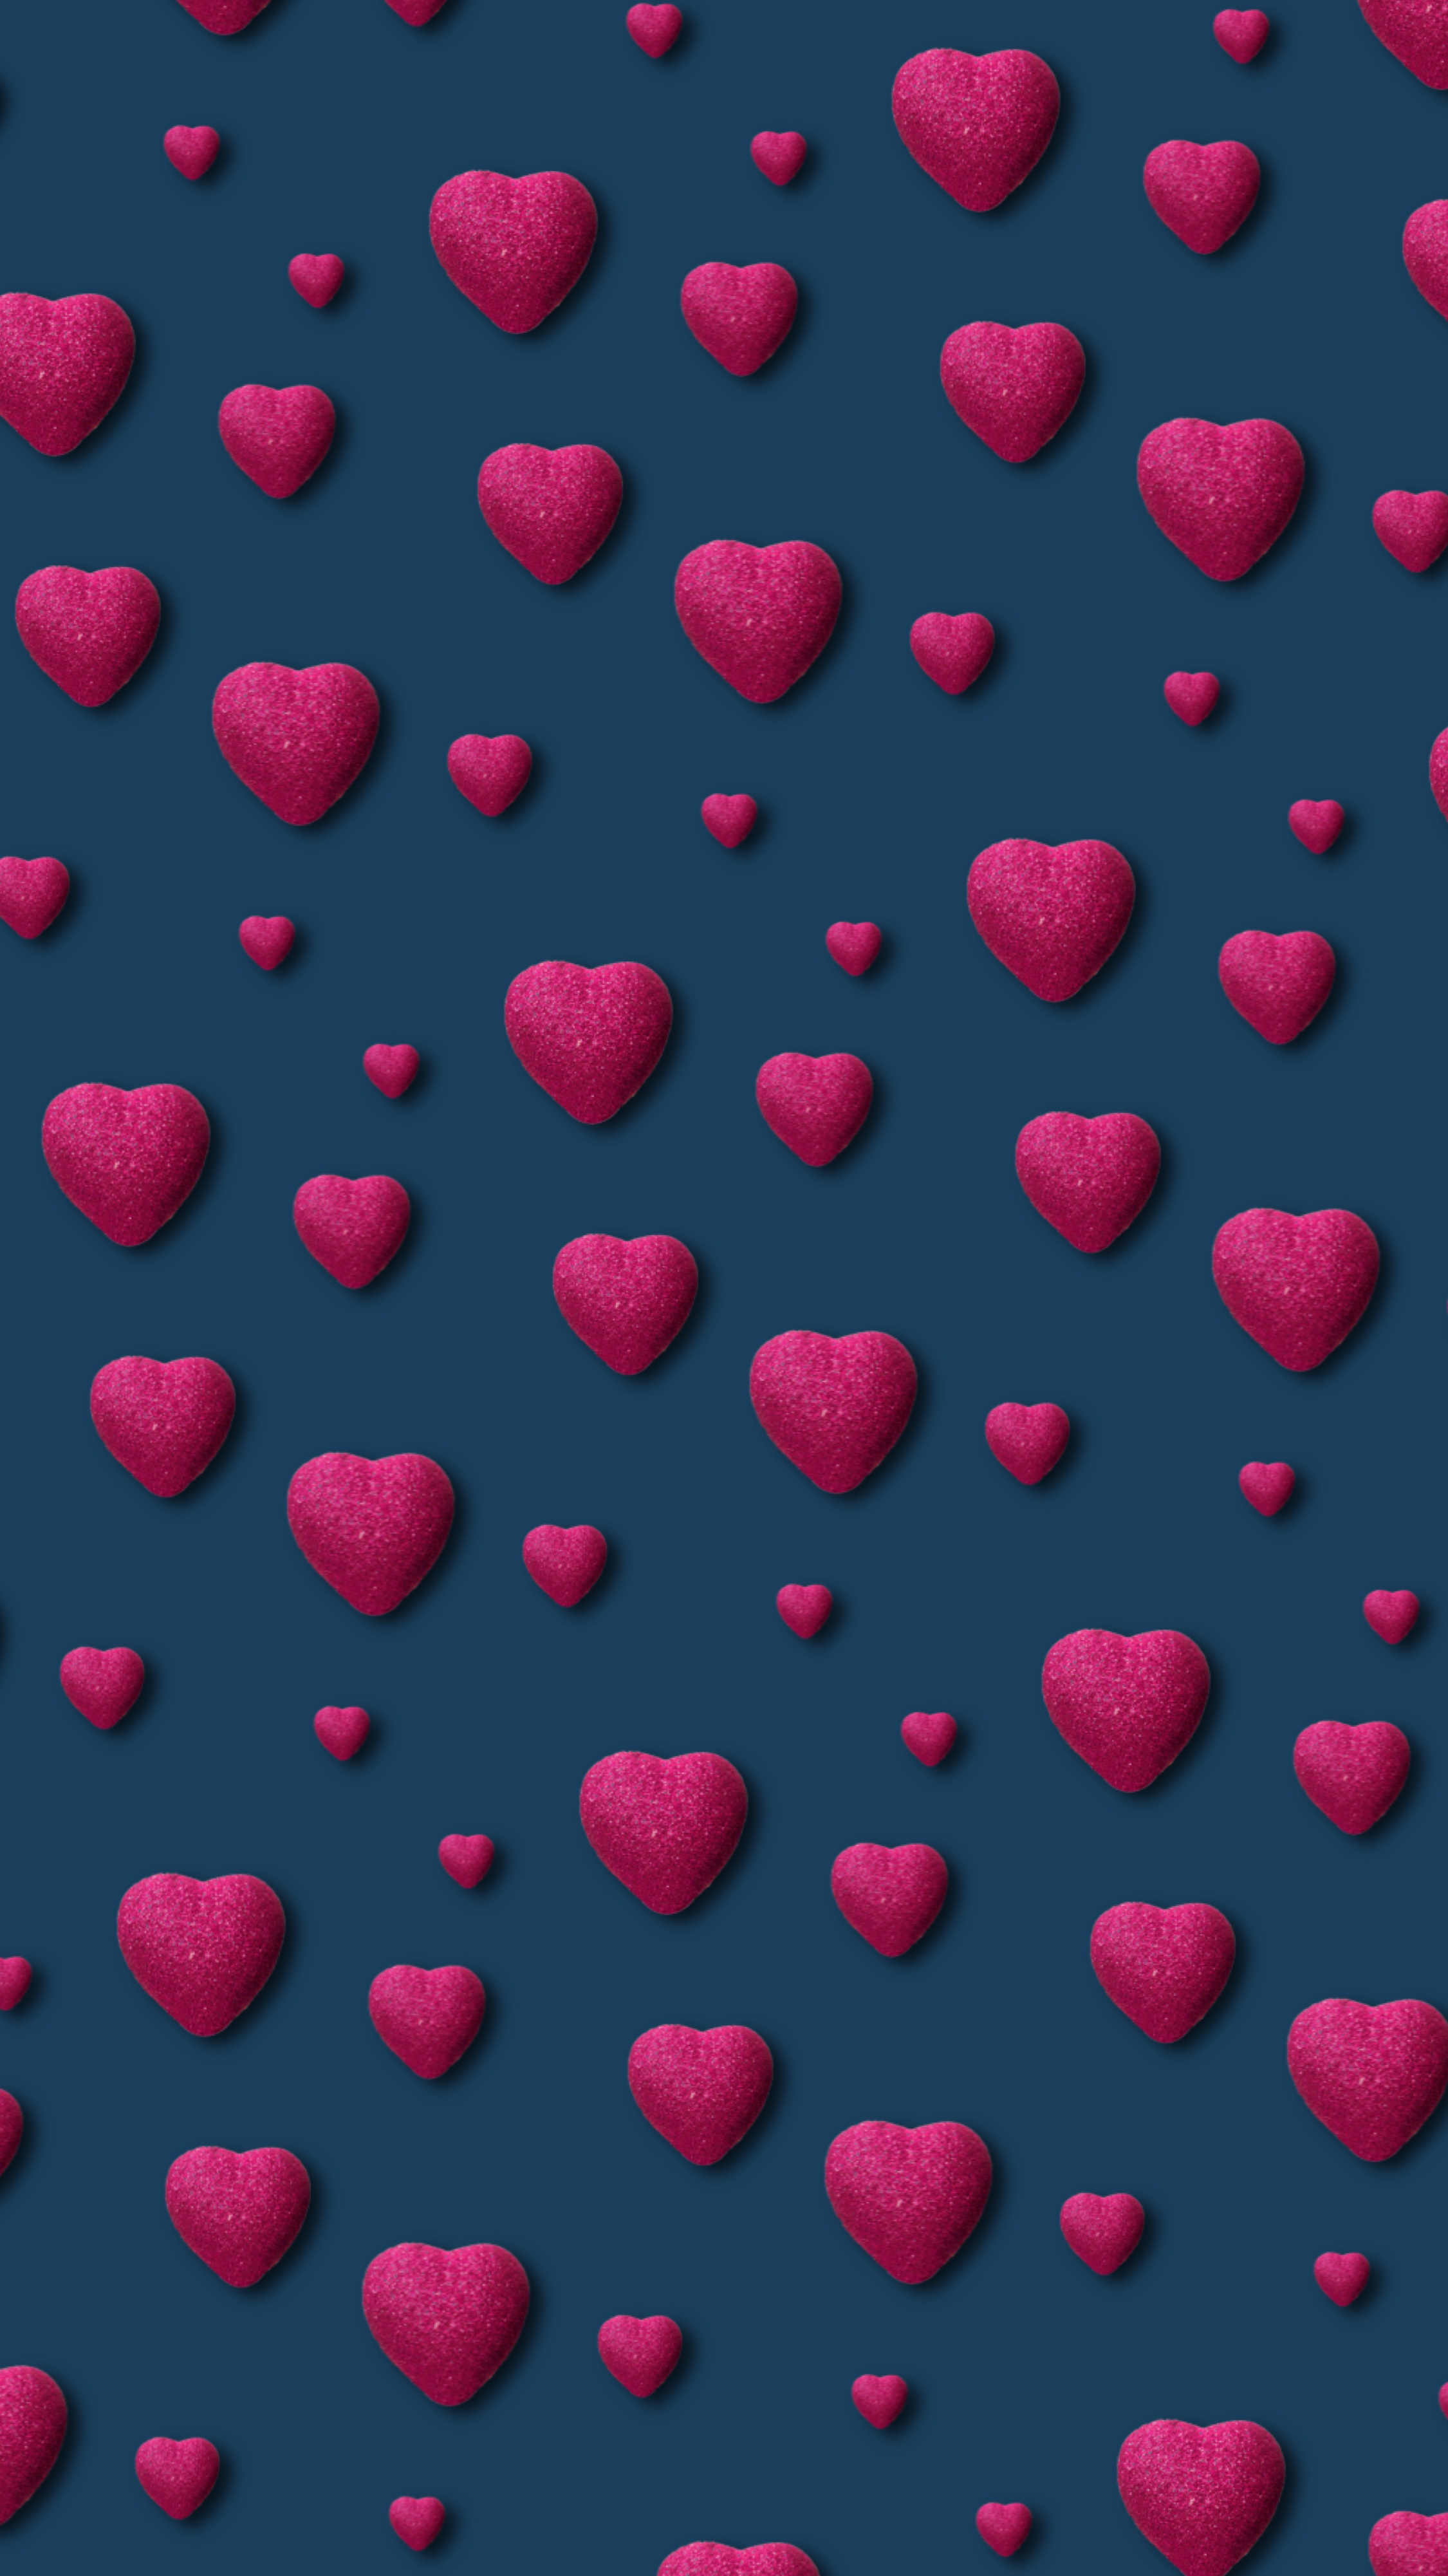 Pink Hearts Tiny On Blue In 2019 Heart Wallpaper